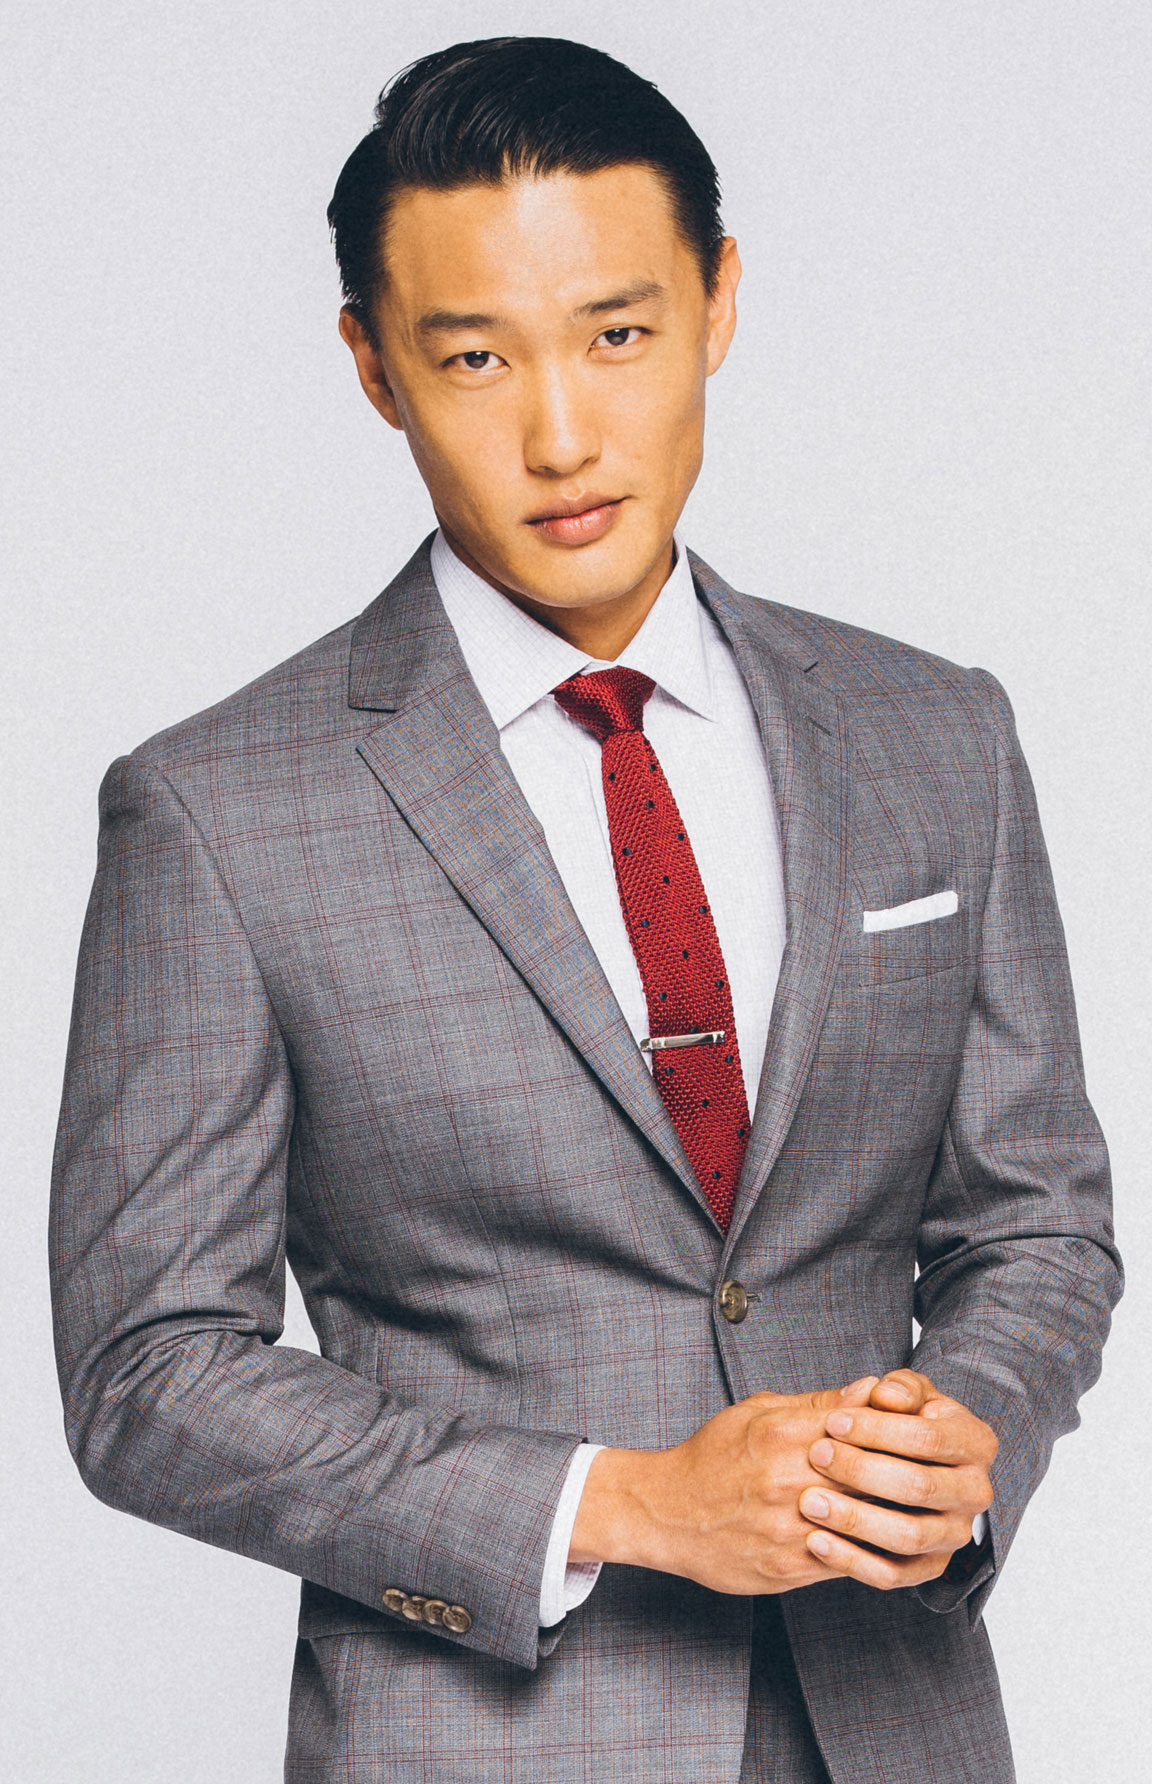 Two trends with one fit: plaid suit and knit tie.